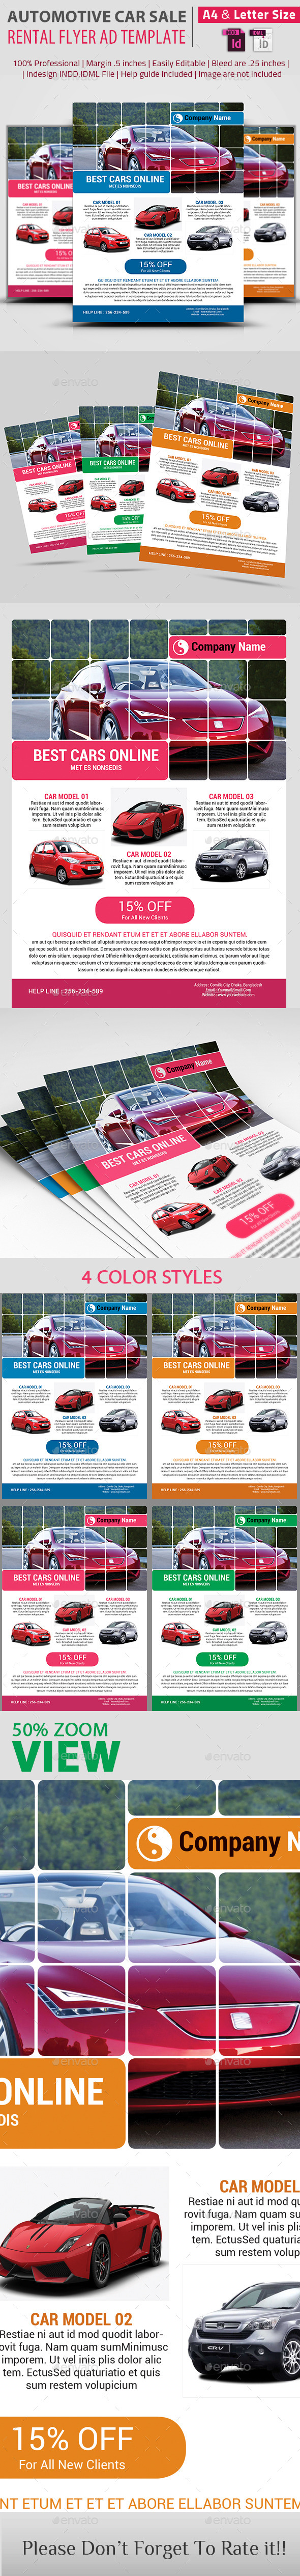 Automotive Car Sale Rental Flyer Ad Template